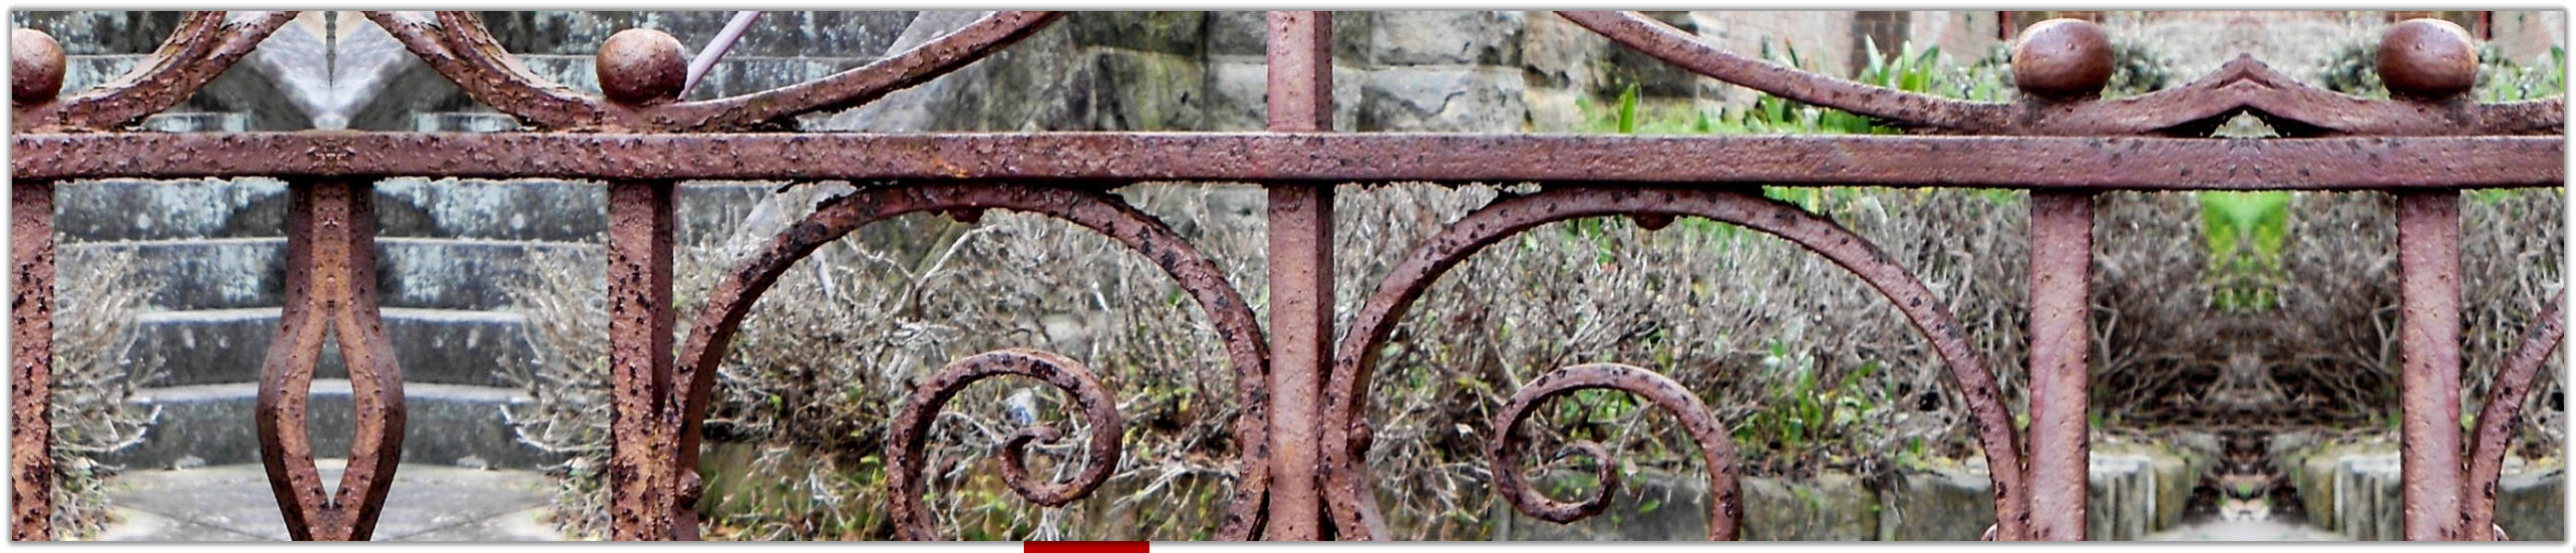 Rusted Wrought Iron